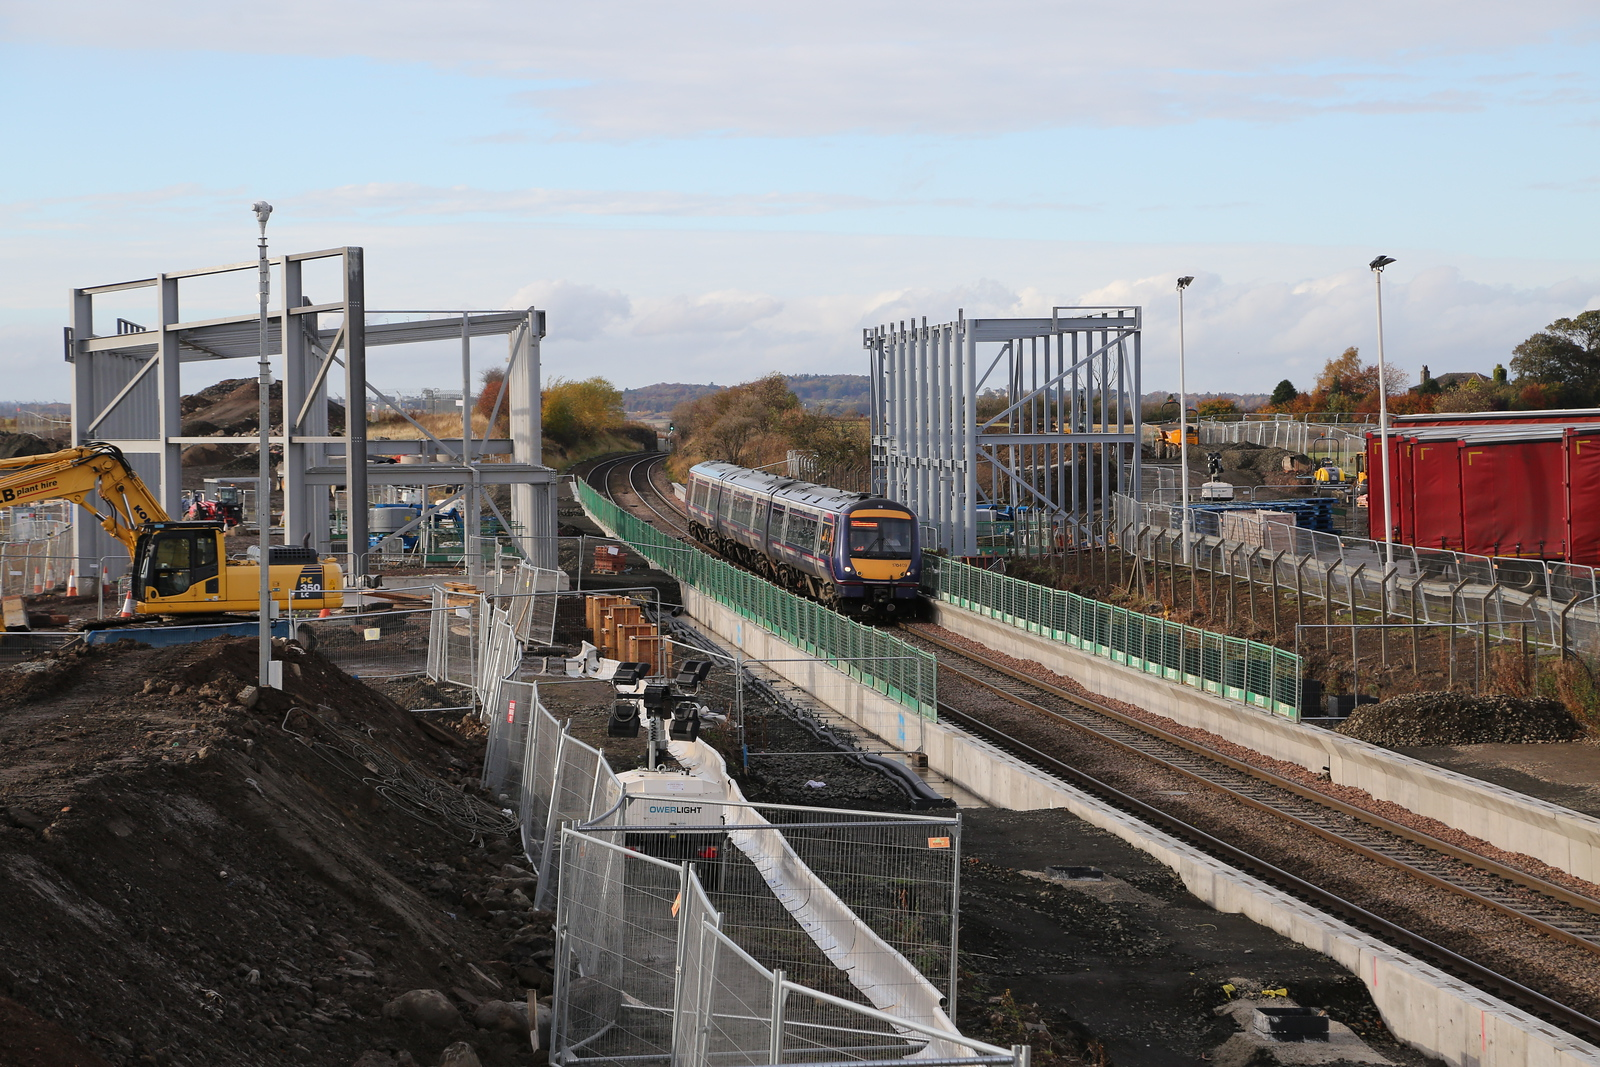 170409 passes the site of the new Edinburgh Gateway station with 1L52 1234 Dundee - Edinburgh